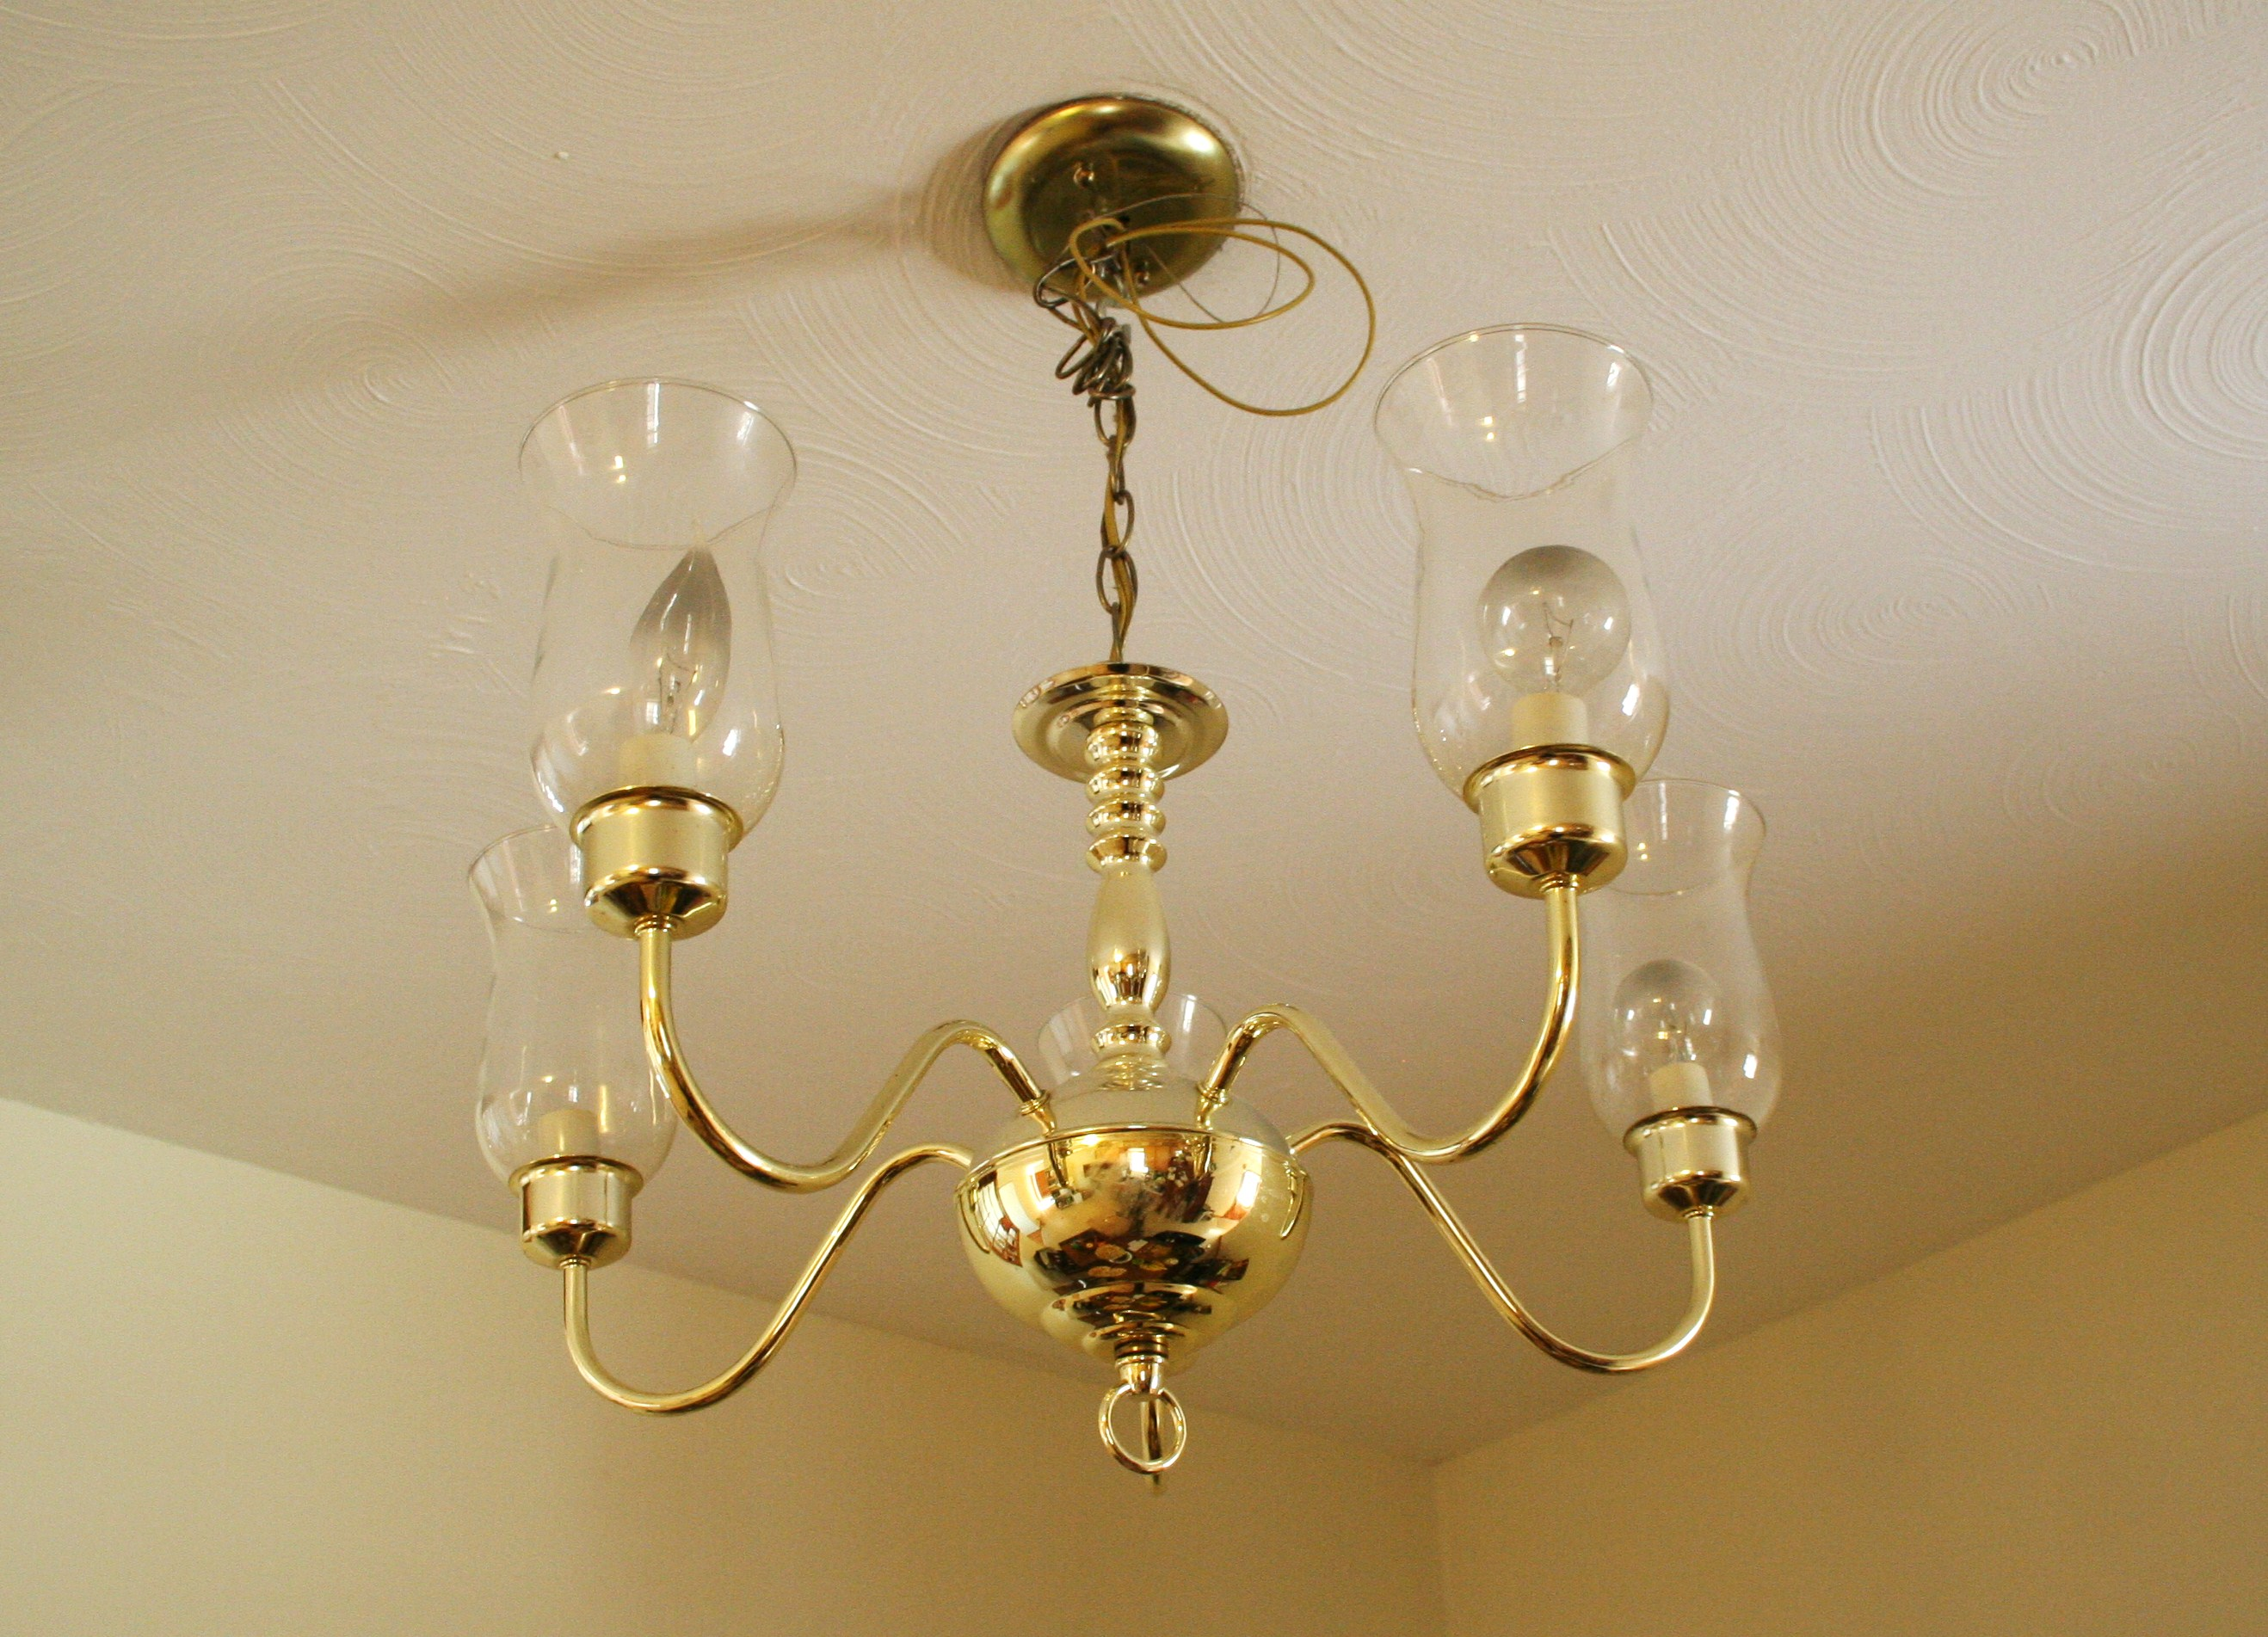 8 Days Of Tips 4 Refurbishing Light Fixtures Don 39 T Buy A Thing